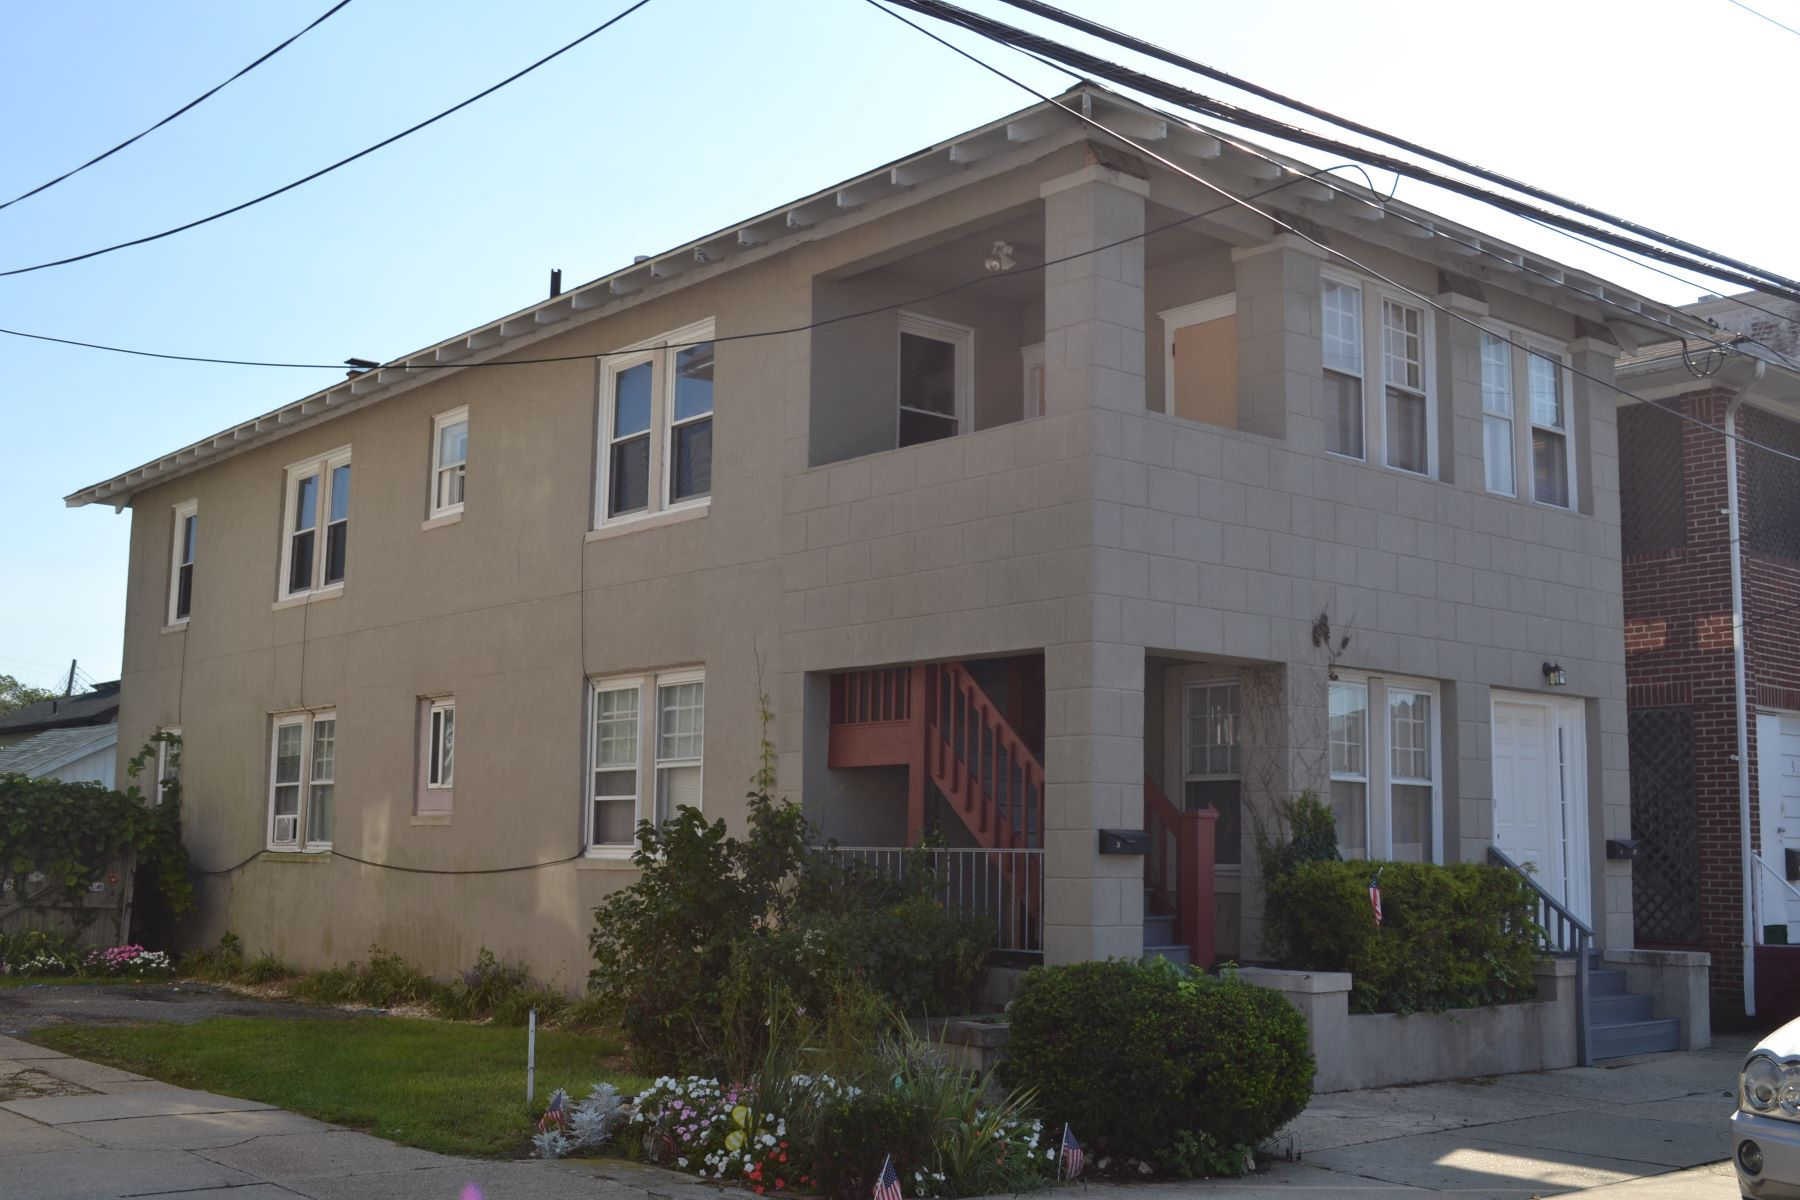 Condominium for Rent at 5 N Newport Ave, Upper Unit 5 N Newport Ave Upper Unit, Ventnor, New Jersey 08402 United States